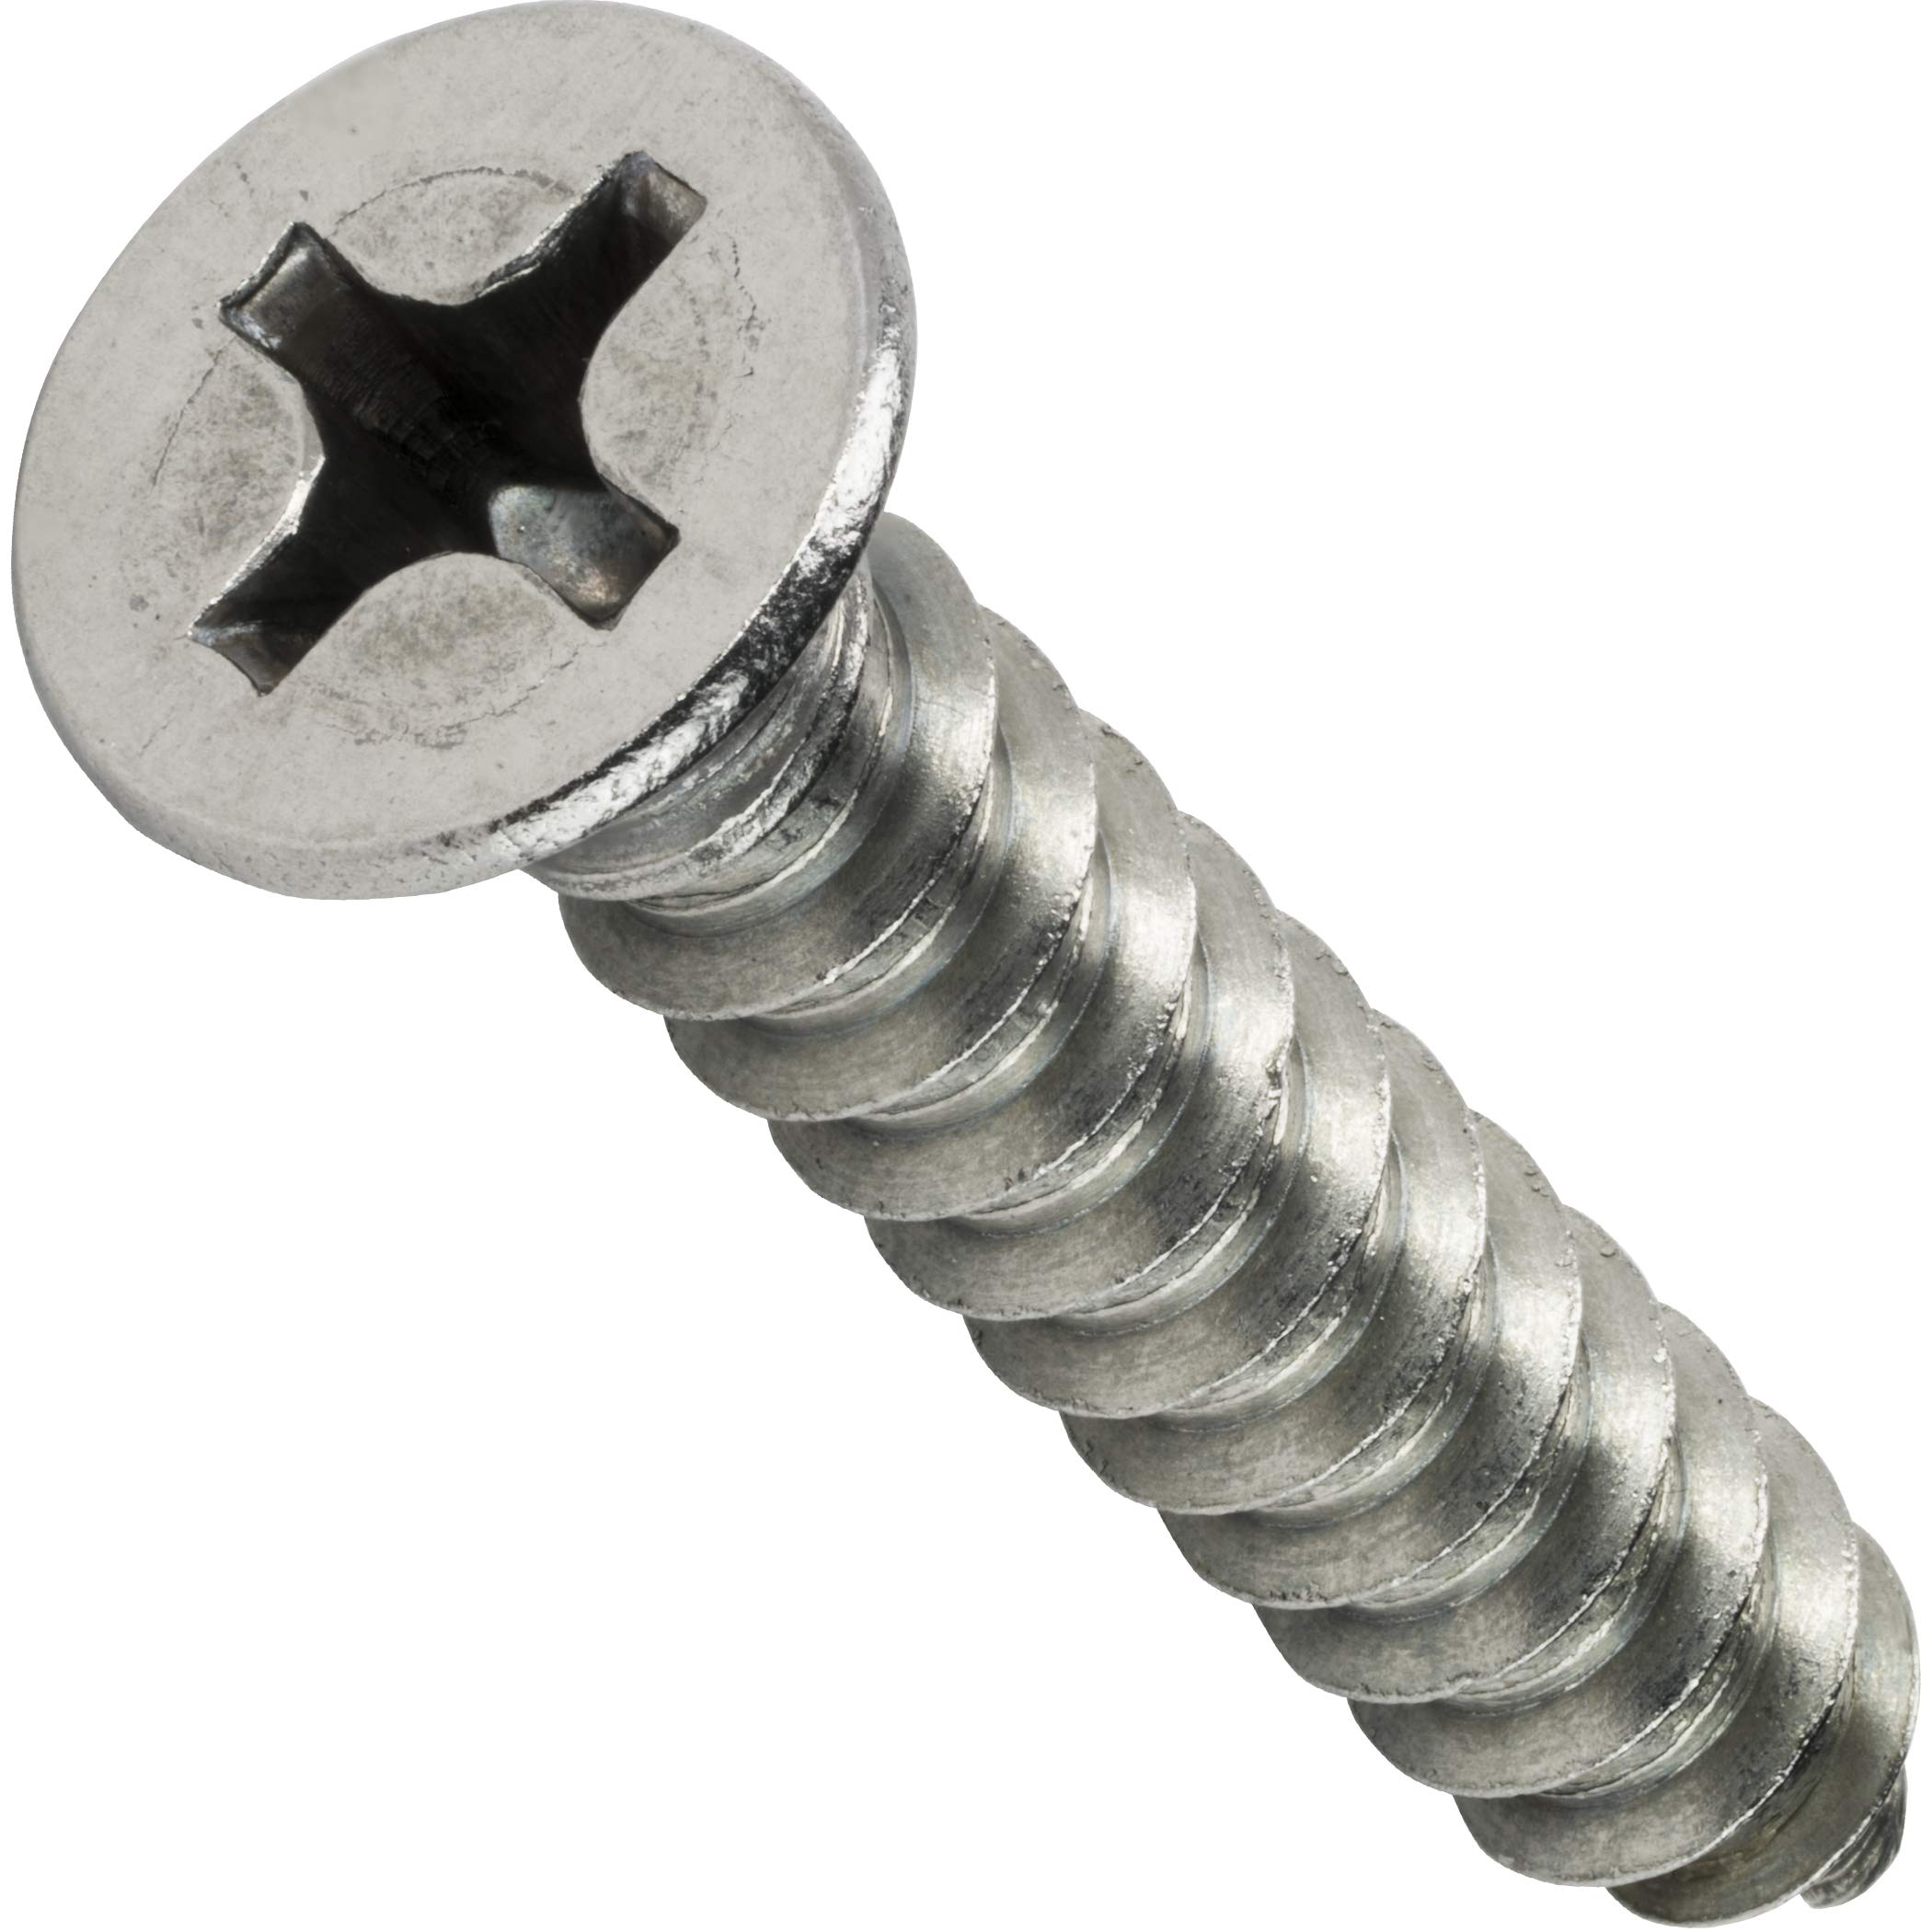 #12 x 2'' Flat Head Sheet Metal Screws, Phillips Drive, Stainless Steel 18-8, Full Thread, Bright Finish, Self-Tapping, Quantity 500 by Fastenere by Fastenere